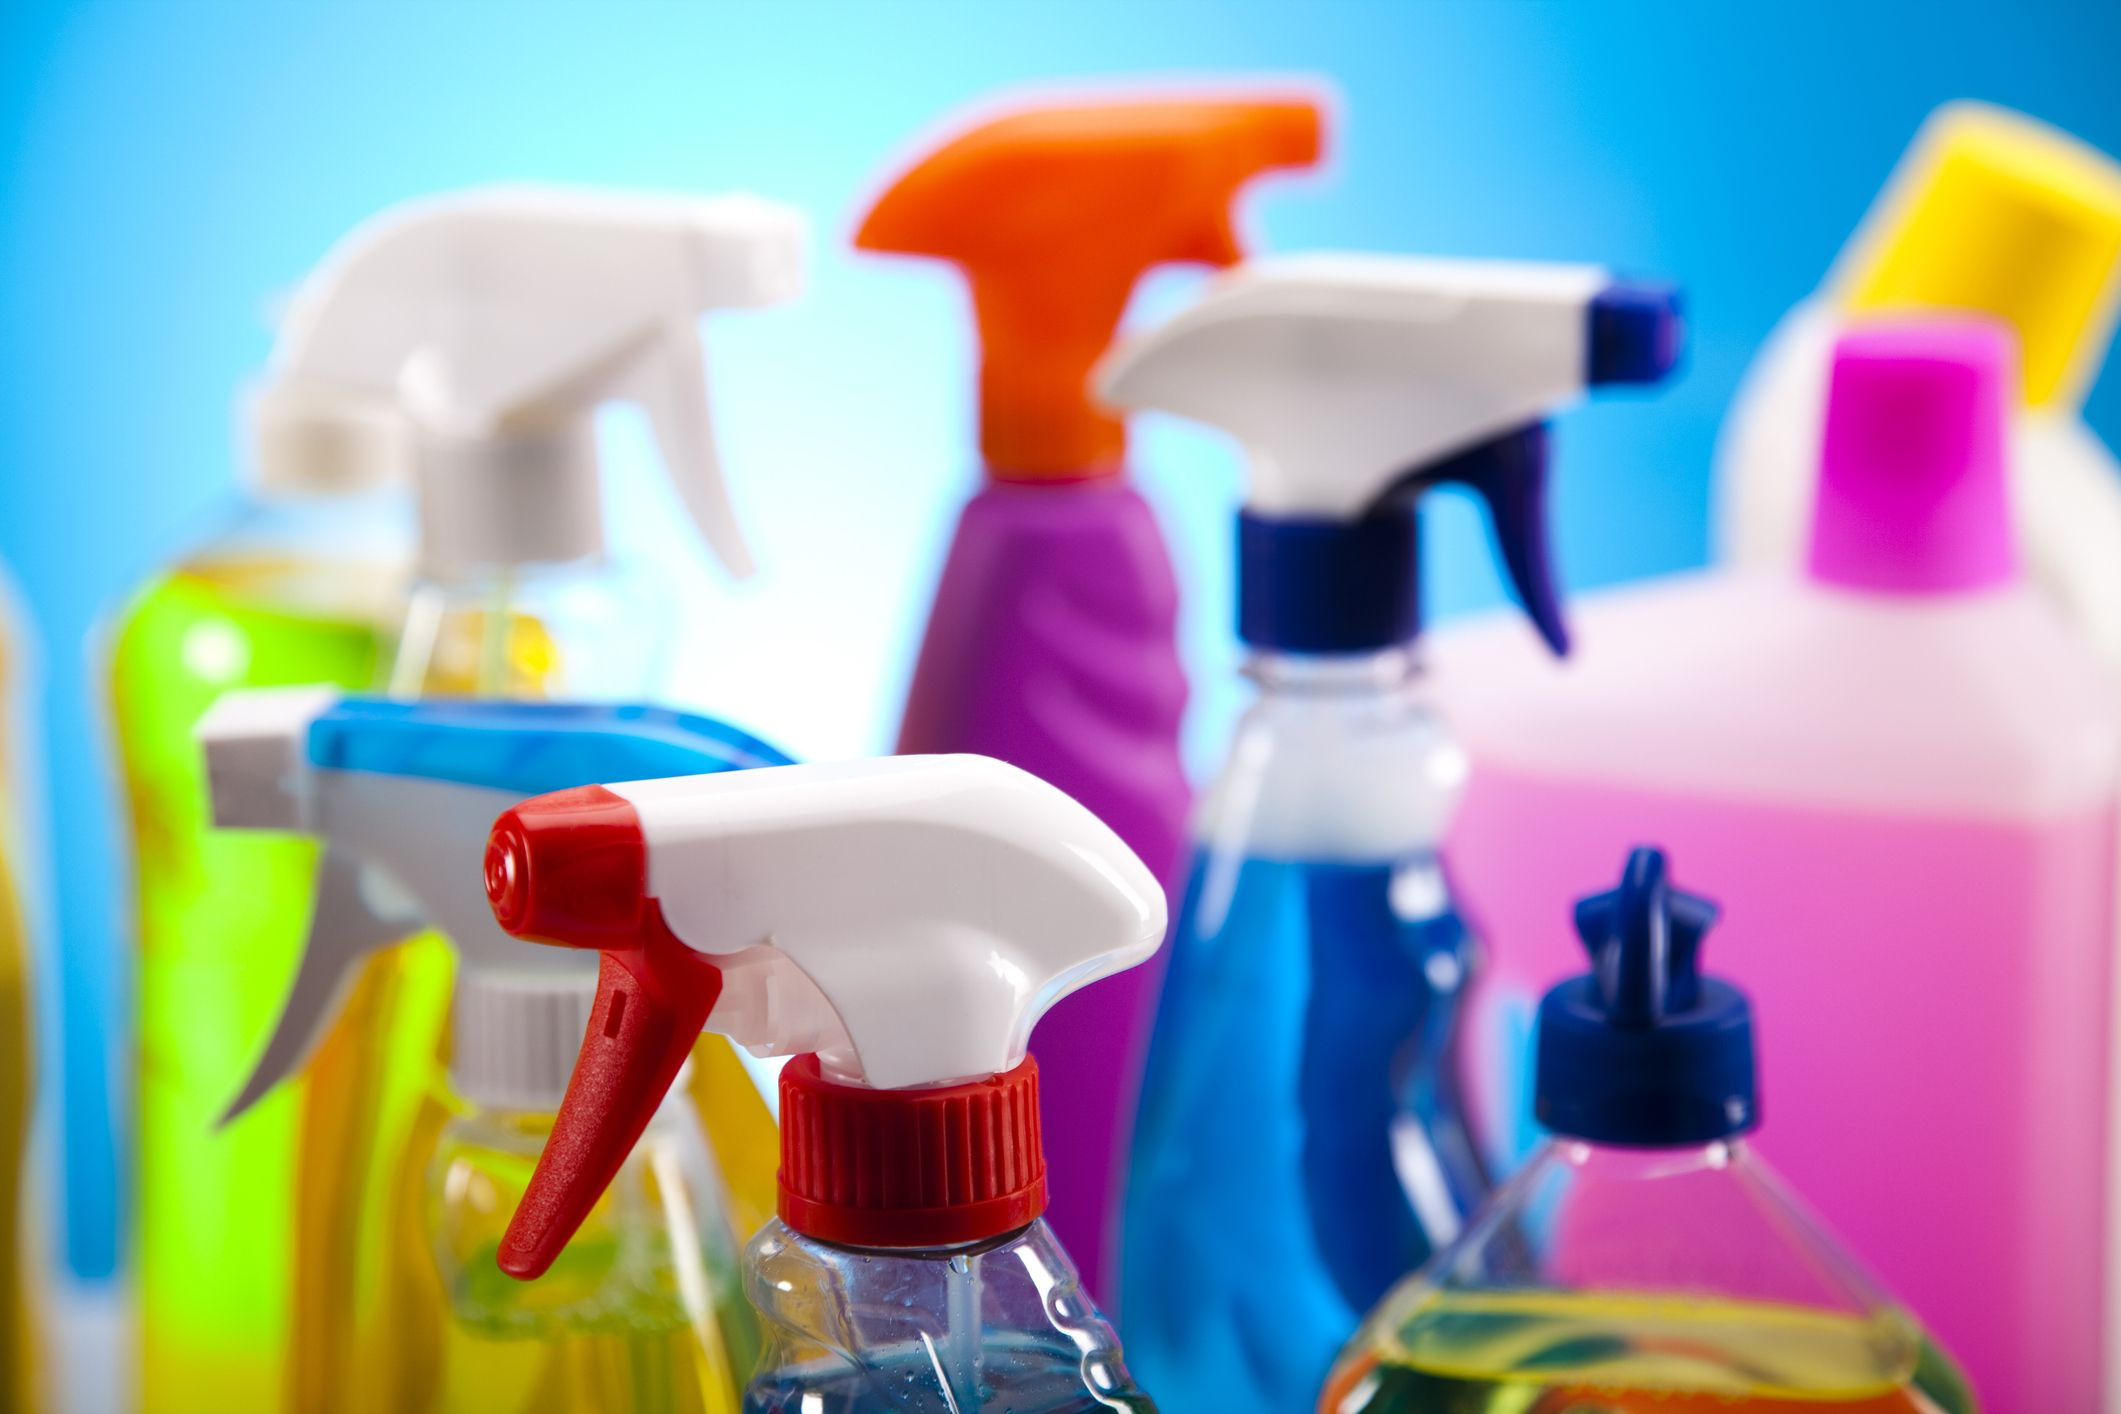 An image of cleaning products